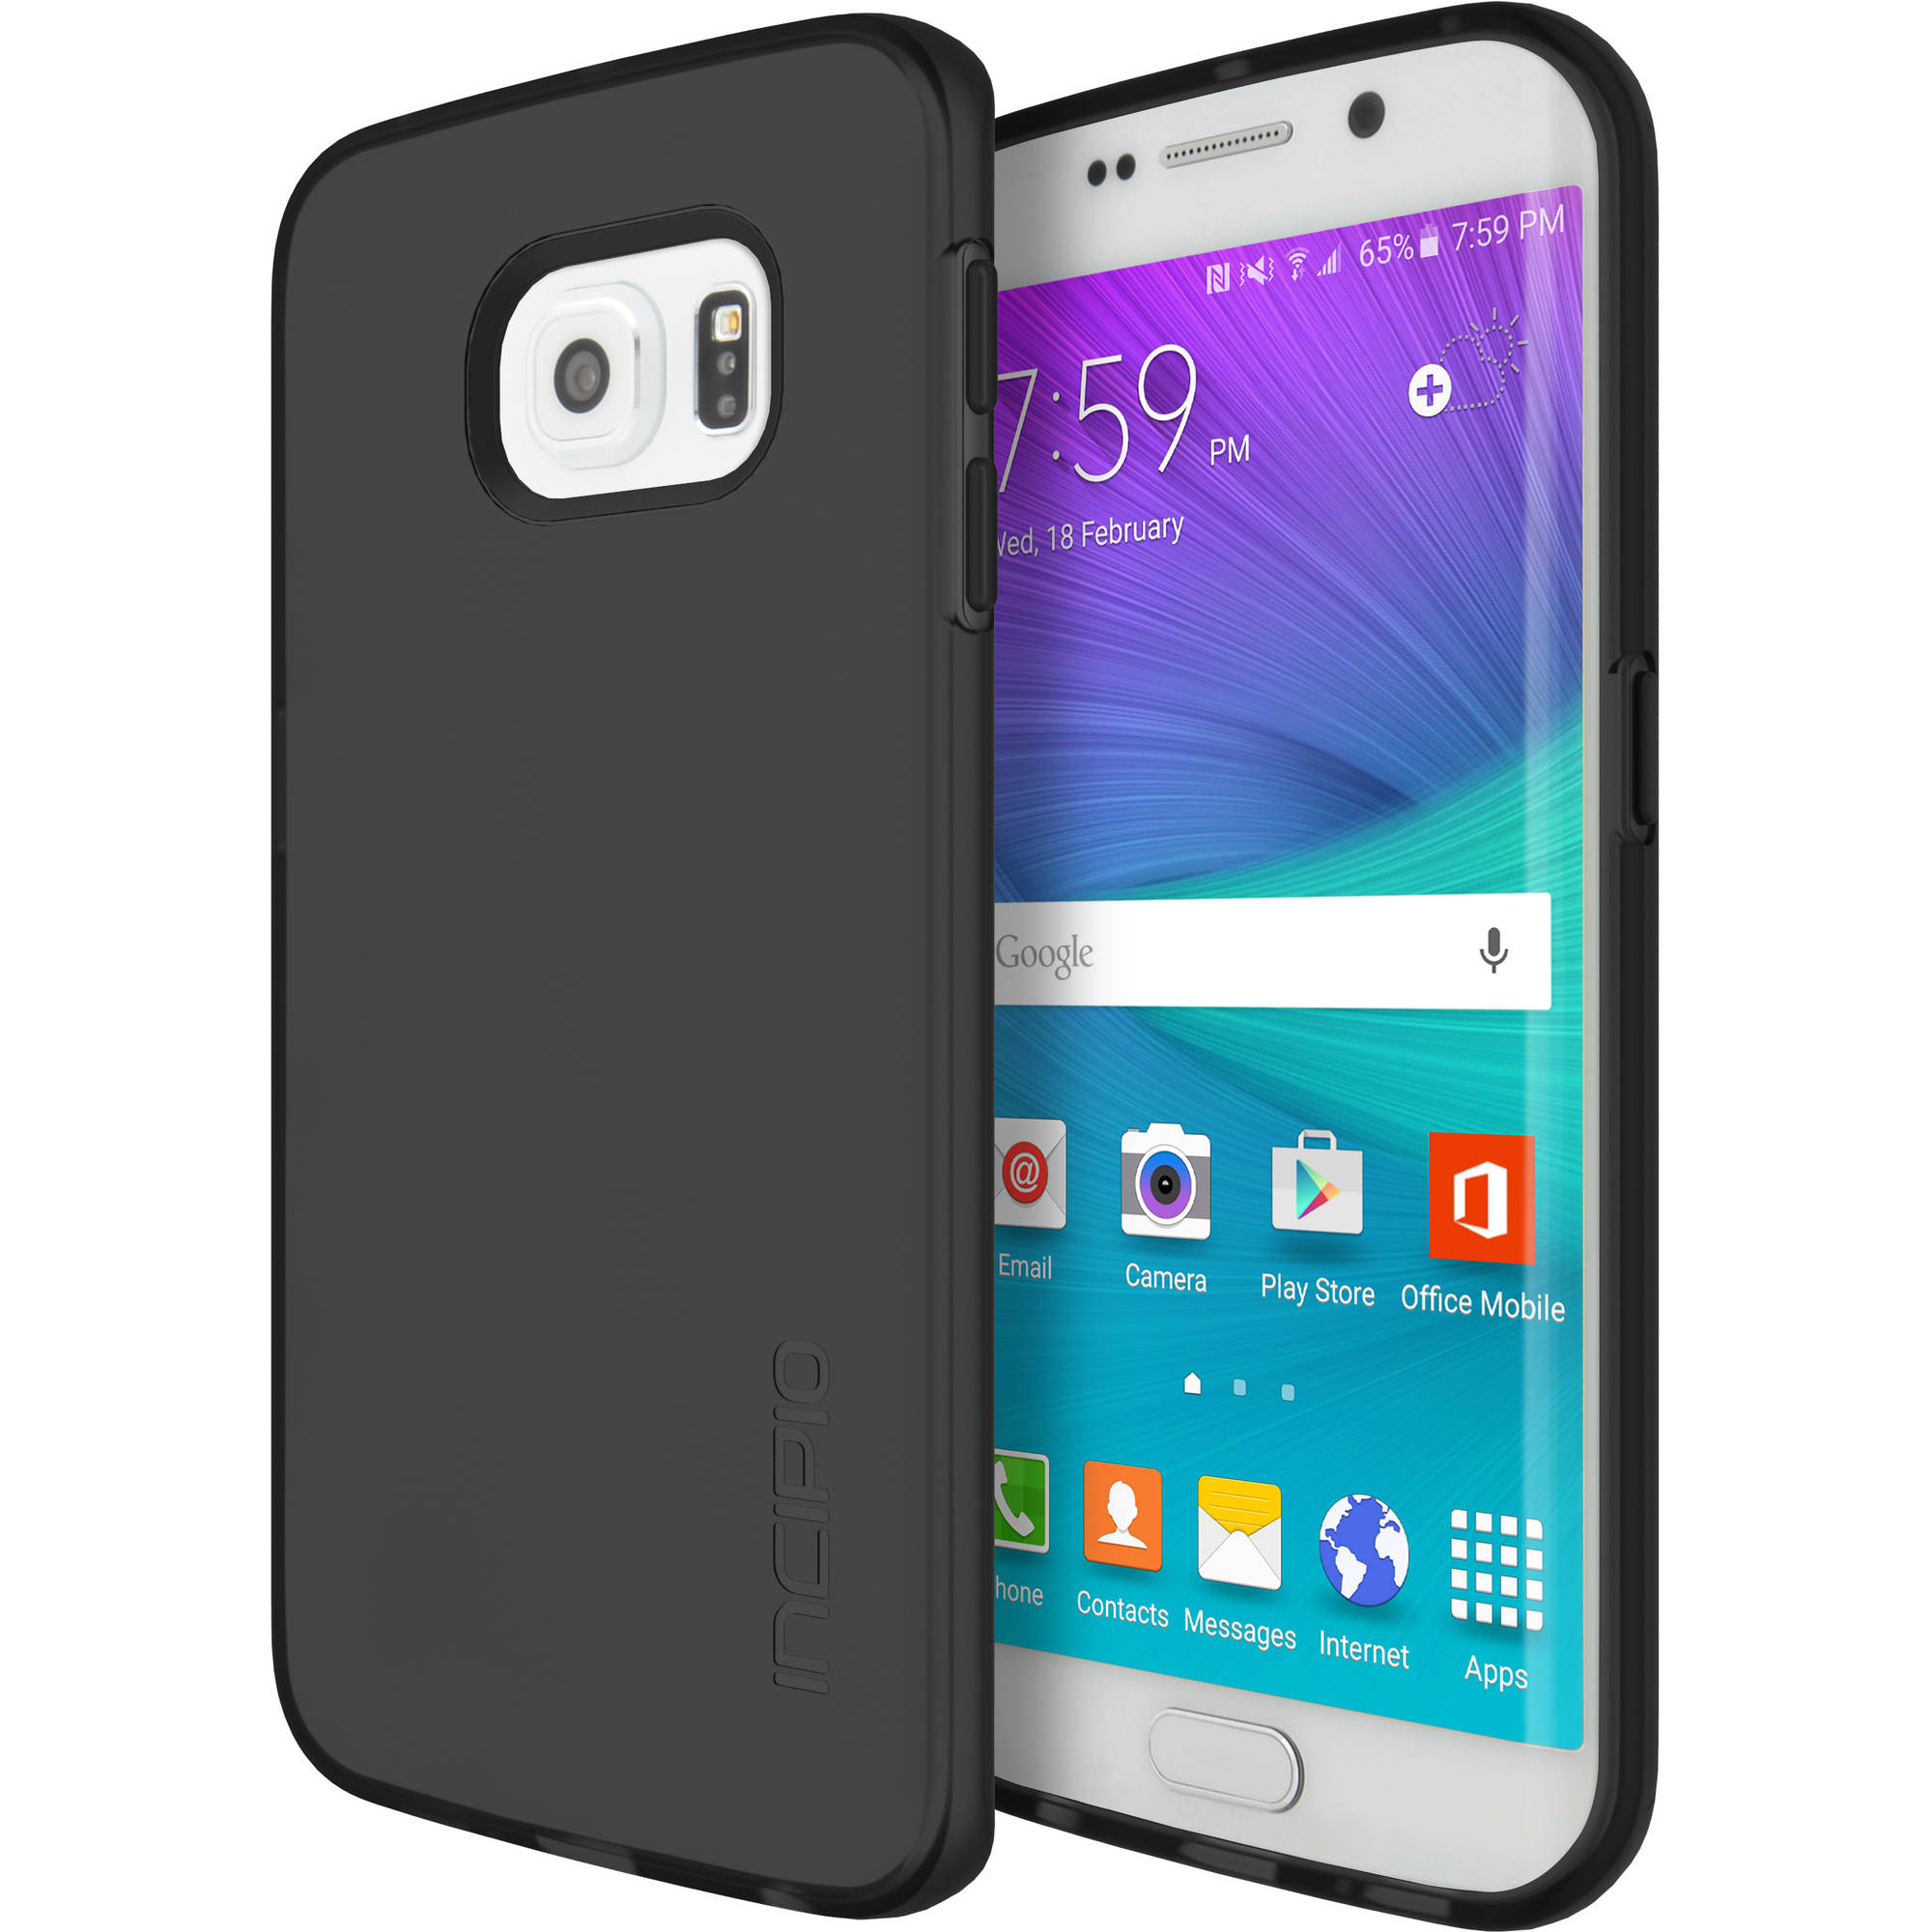 Incipio Galaxy S6 Edge NGP Case